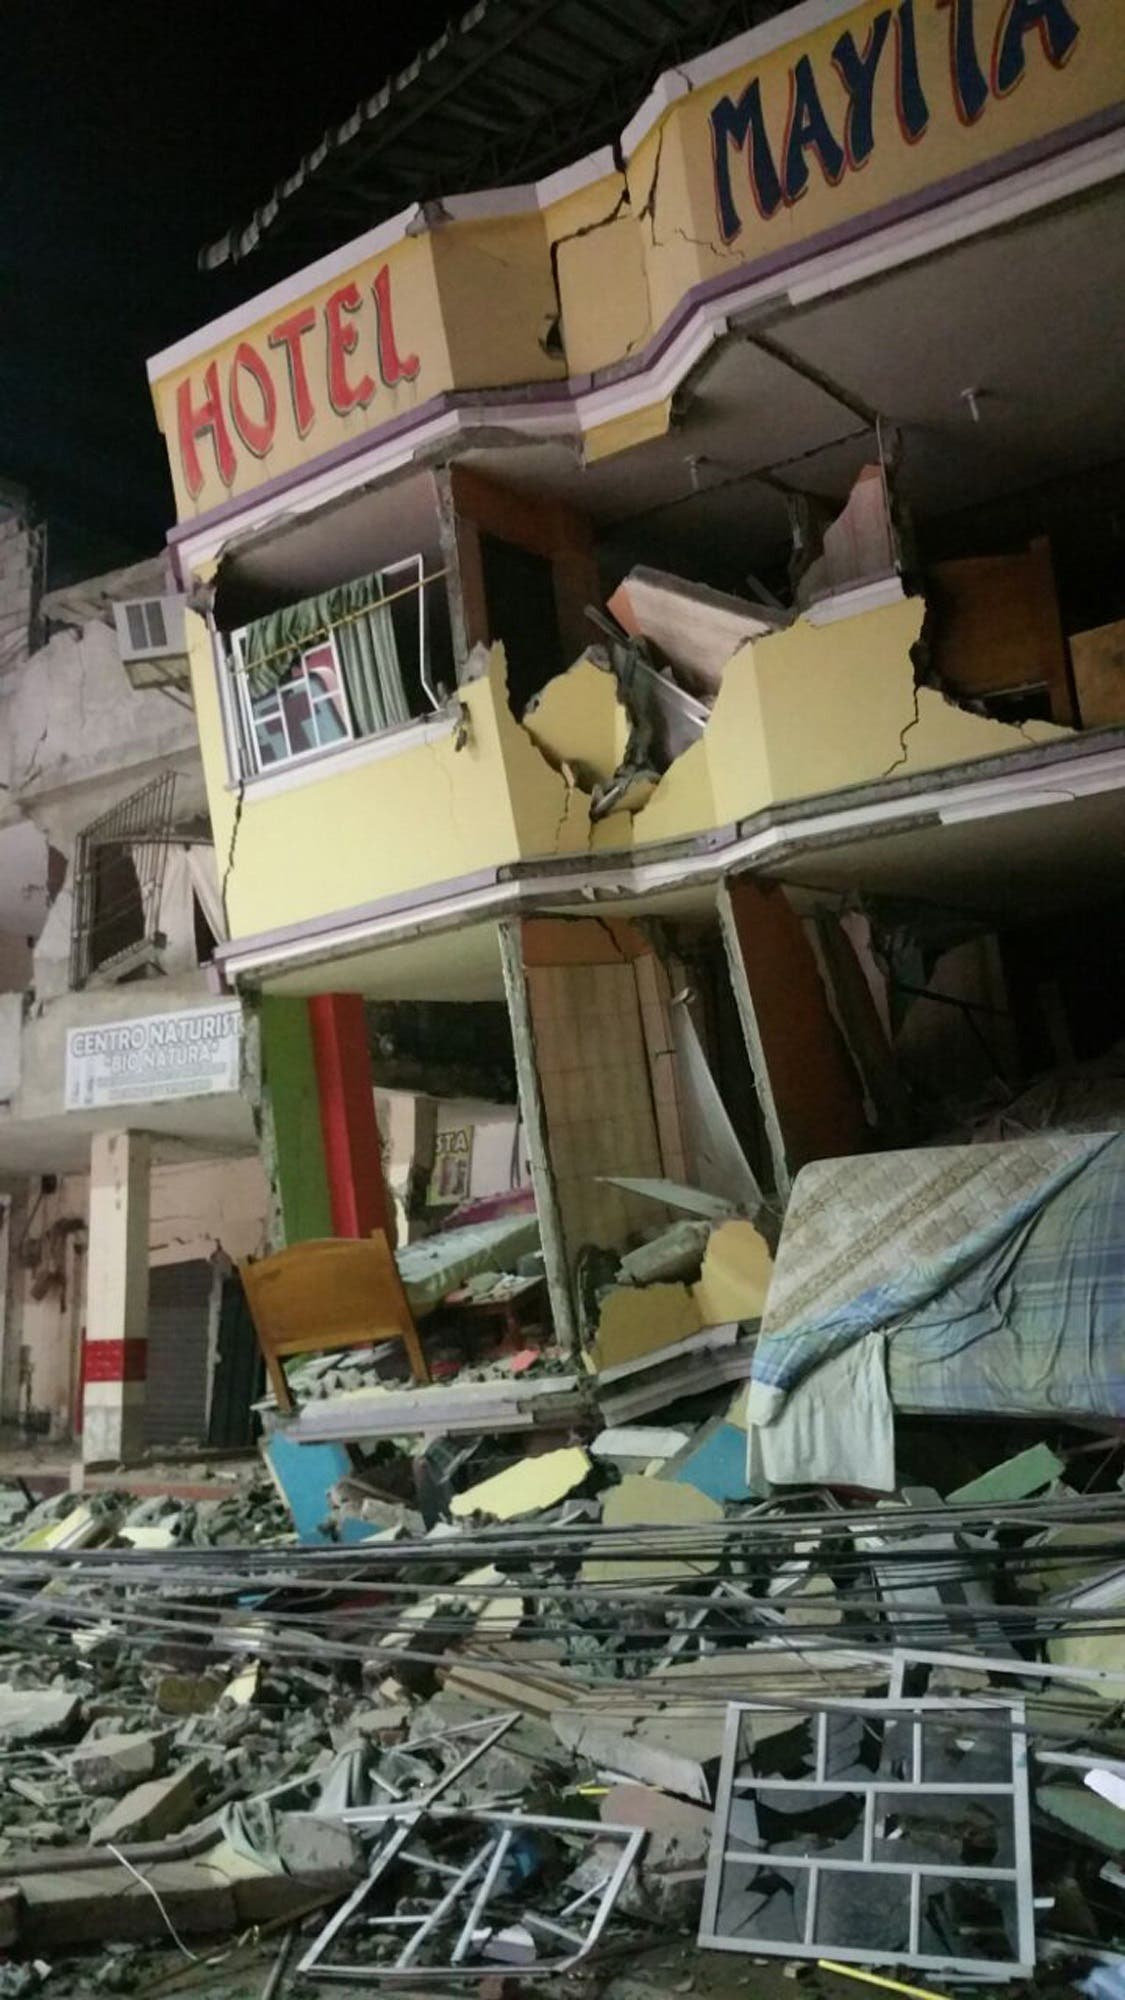 An hotel barely stands after an earthquake in the town of Manta, Ecuador, Saturday April 16, 2016. A powerful, 7.8-magnitude earthquake shook Ecuador's central coast on Saturday, killing at least 28 people and spreading panic hundreds of kilometers (miles) away as it collapsed homes and buckled a major overpass.(AP Photo/Patricio Ramos)